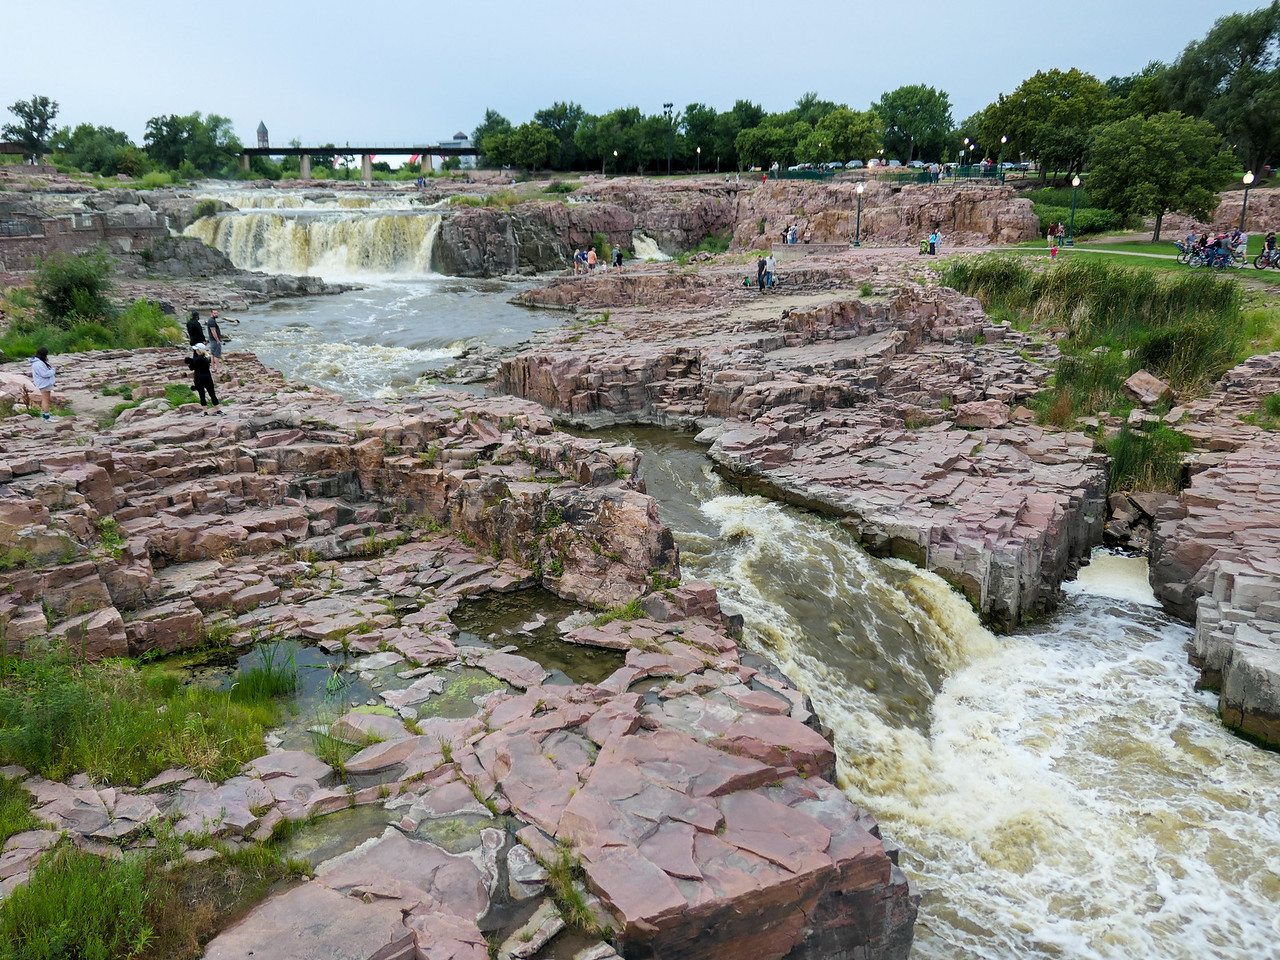 Falls Park in Sioux Falls, South Dakota